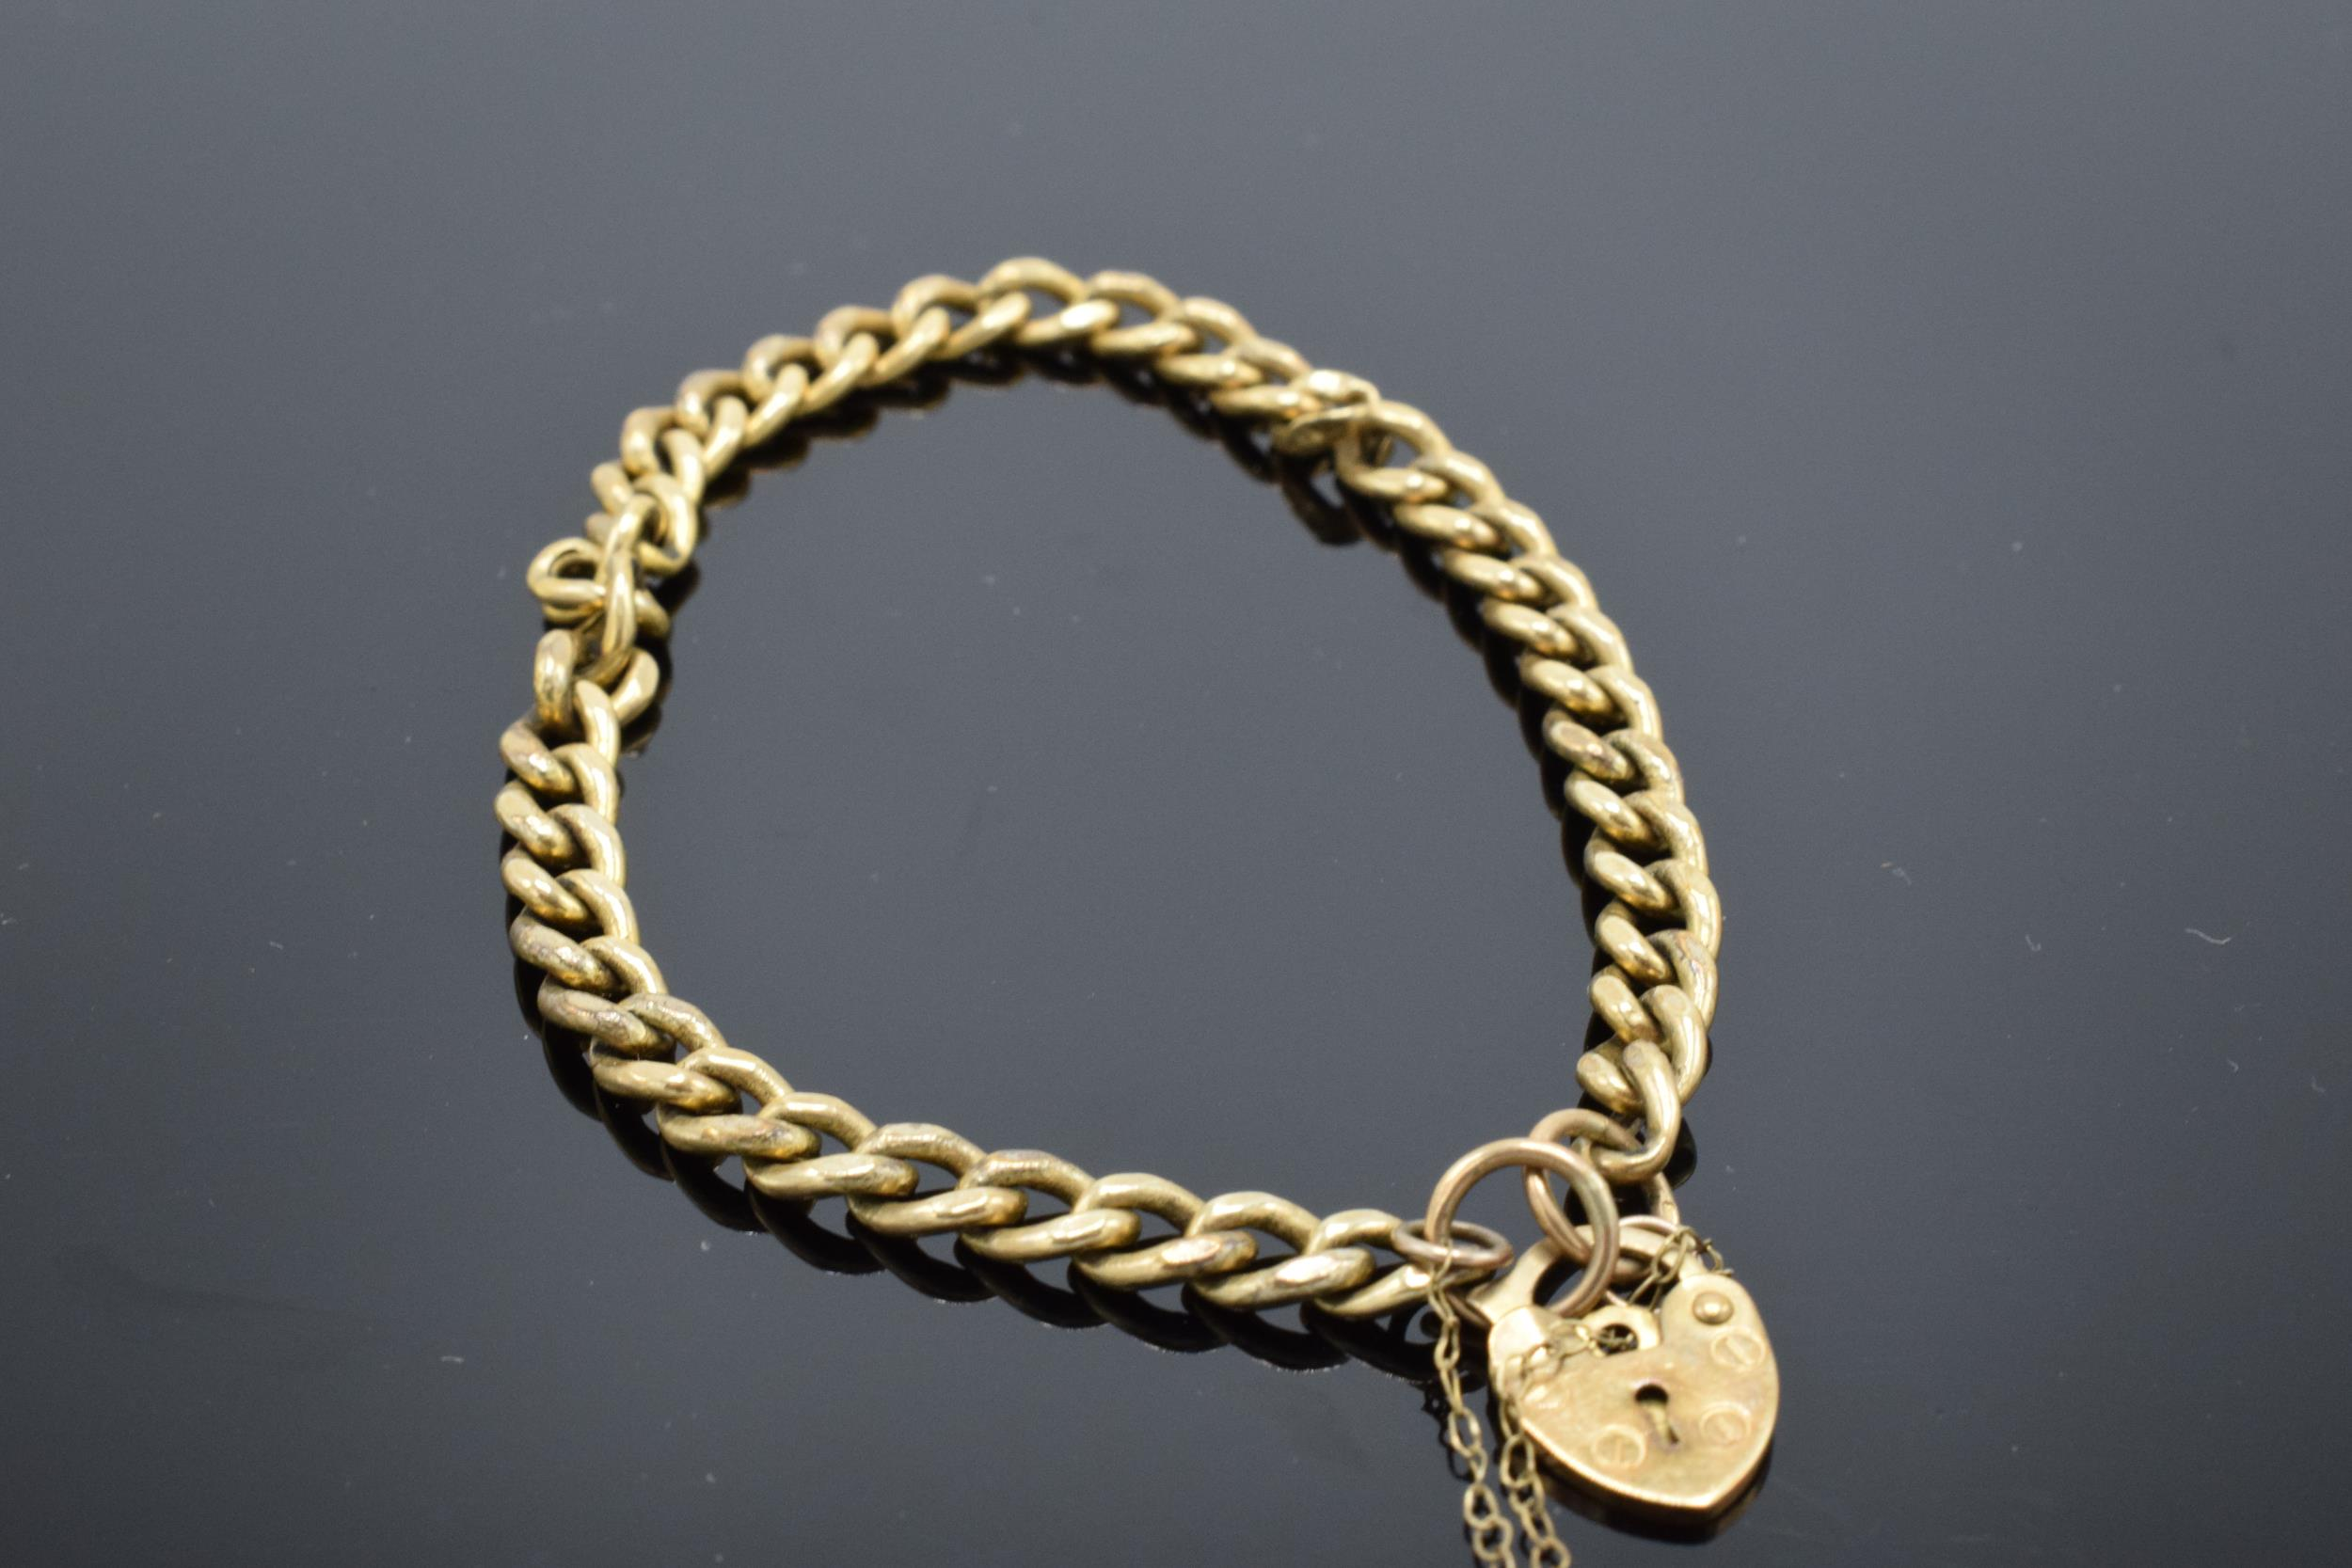 9ct gold hollow link bracelet with some damage 4.7g - Image 3 of 3